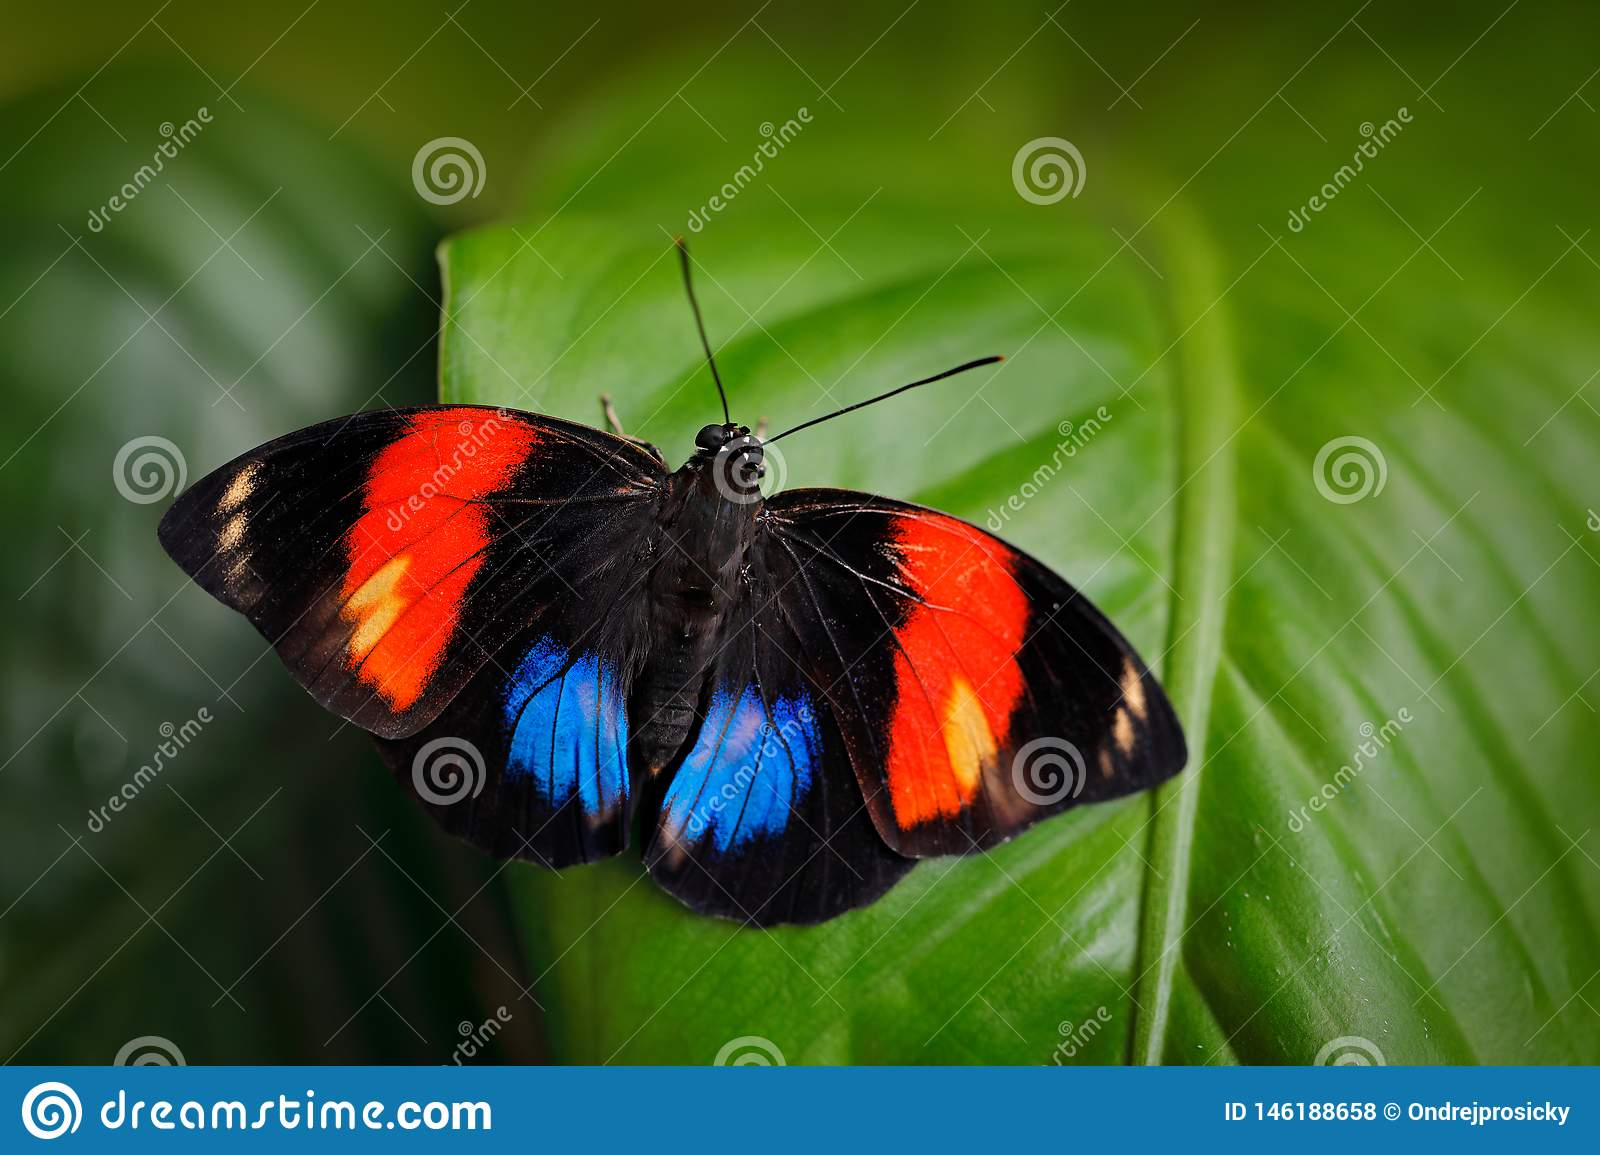 Bộ sưu tập cánh vẩy 4 - Page 25 Agrias-amydon-dark-blue-red-butterfly-sitting-green-leaves-ttropic-jungle-forest-brazil-south-america-wildlife-scene-146188658